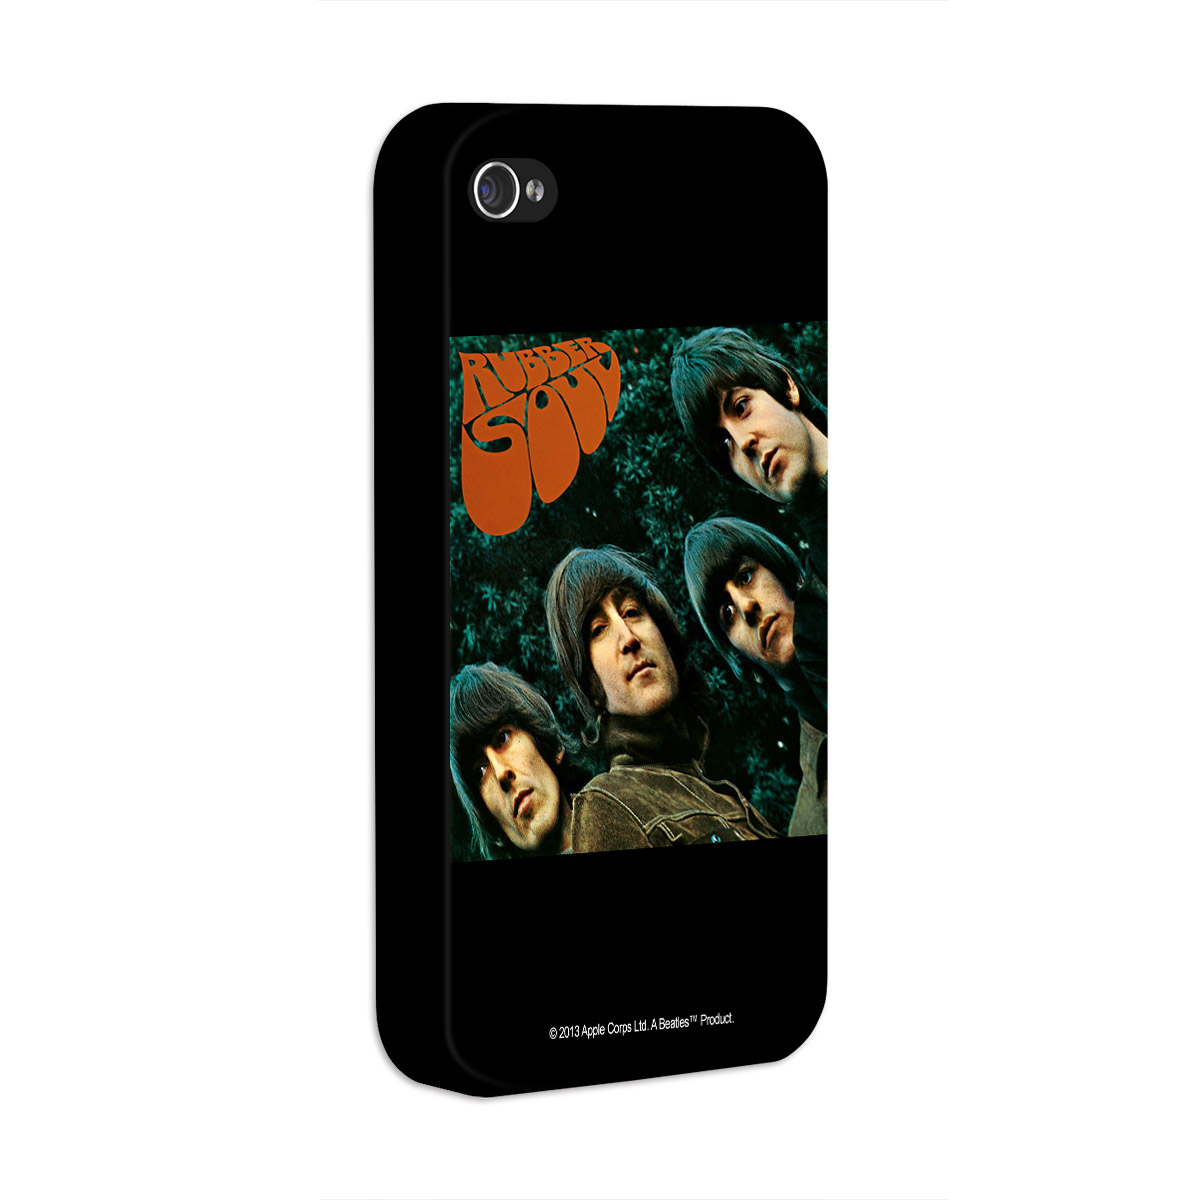 Capa de iPhone 4/4S The Beatles Rubber Soul